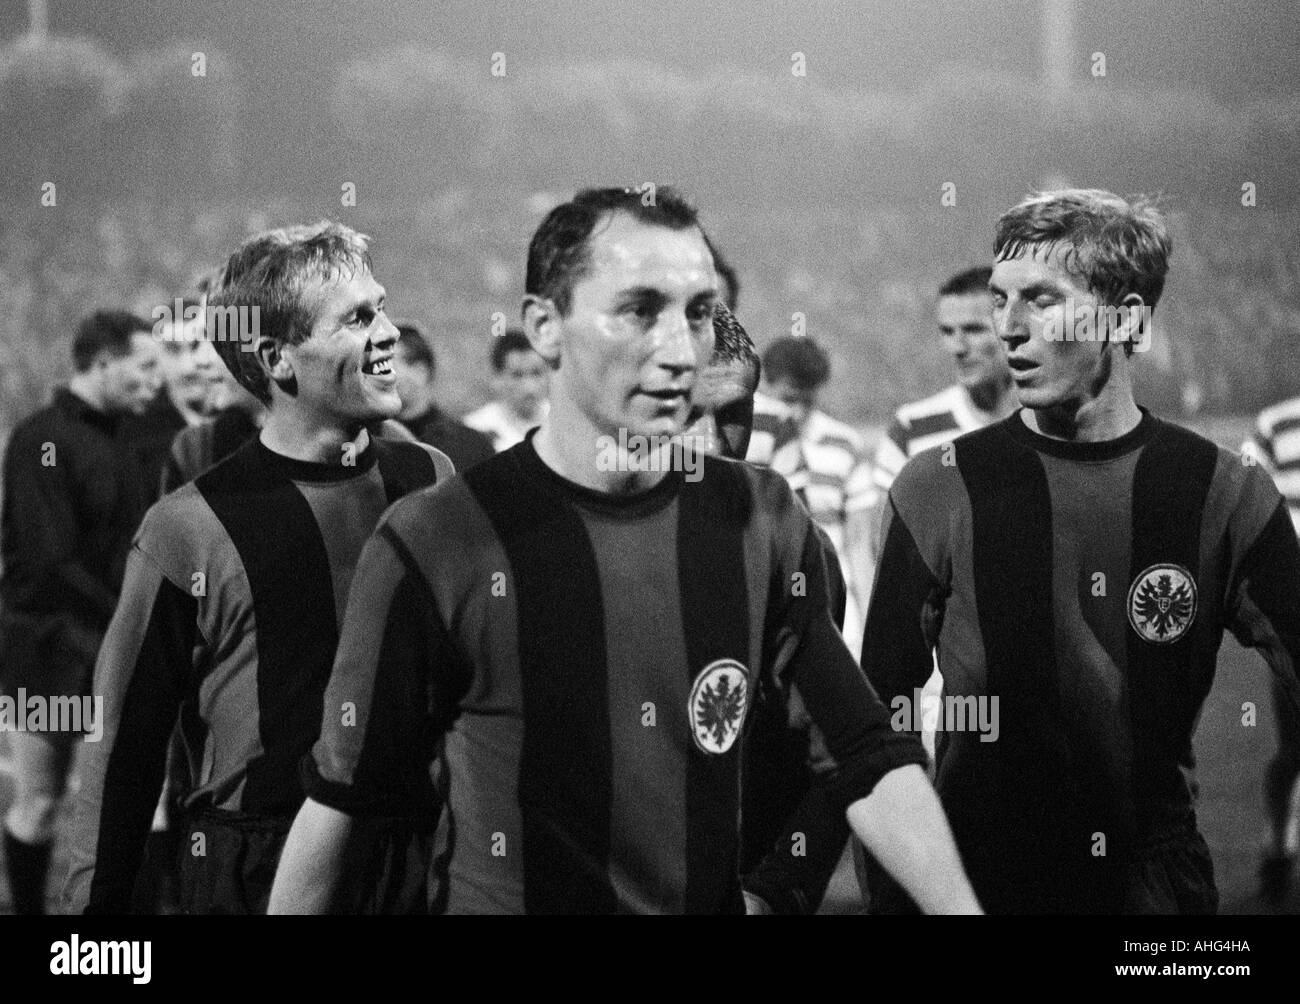 football, Bundesliga, 1967/1968, Wedau Stadium in Duisburg, MSV Duisburg versus Eintracht Frankfurt 0:1, football players leaving the pitch, f.l.t.r. Siegfried Bronnert, Fahrudin Jusufi, Juergen Grabowski (all Frankfurt) - Stock Image